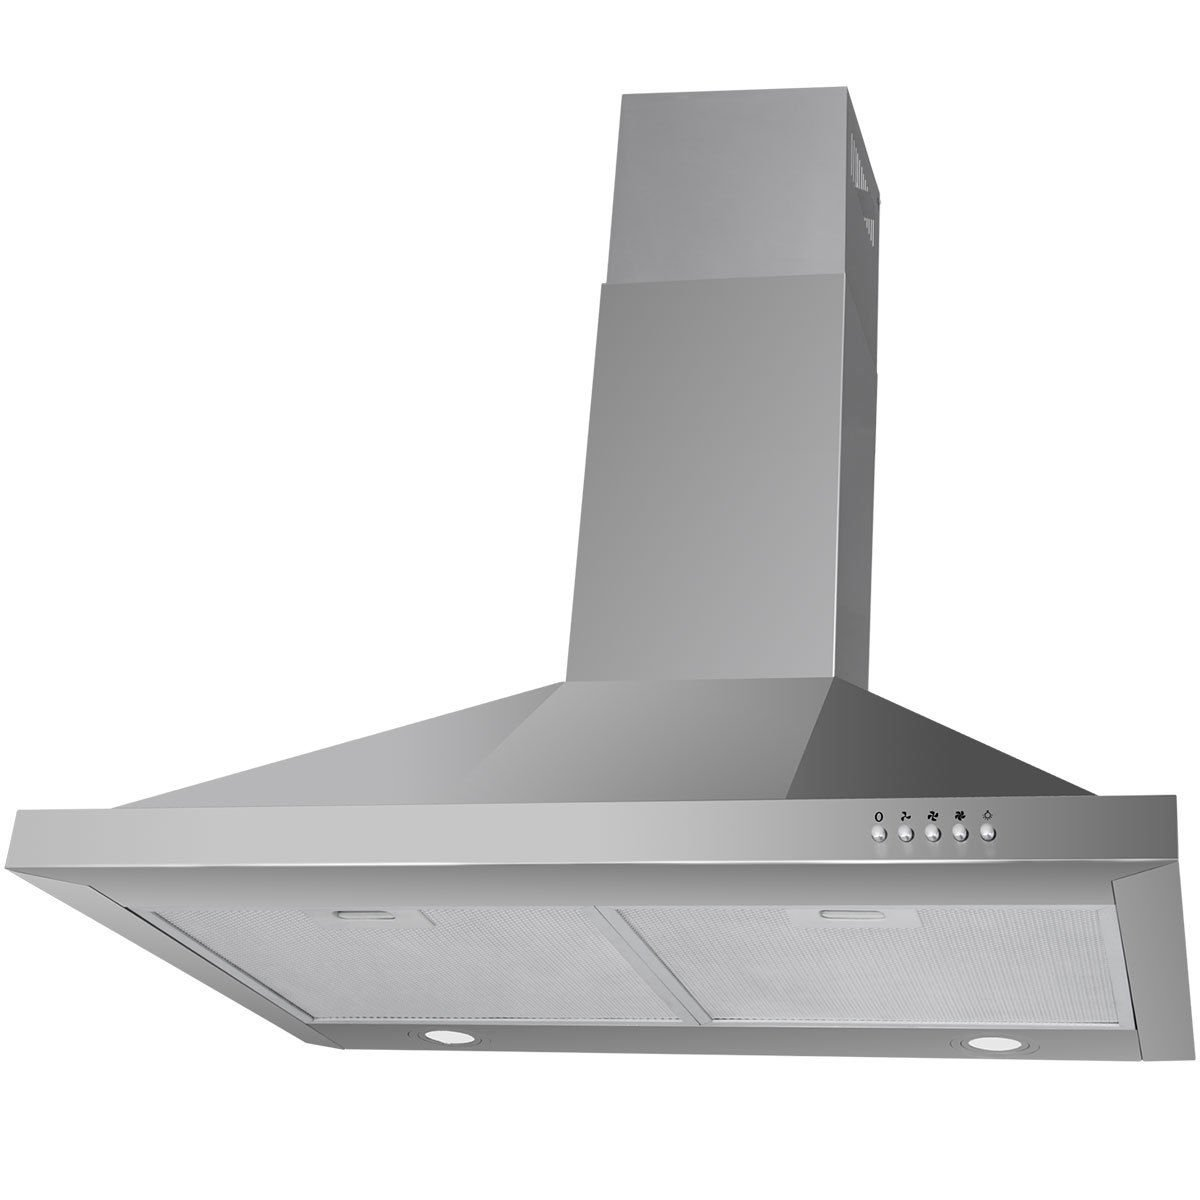 Costway 30'' Wall Mount Stainless Steel Push Control Kitchen Range Hood Vent Fan w/ Led Light